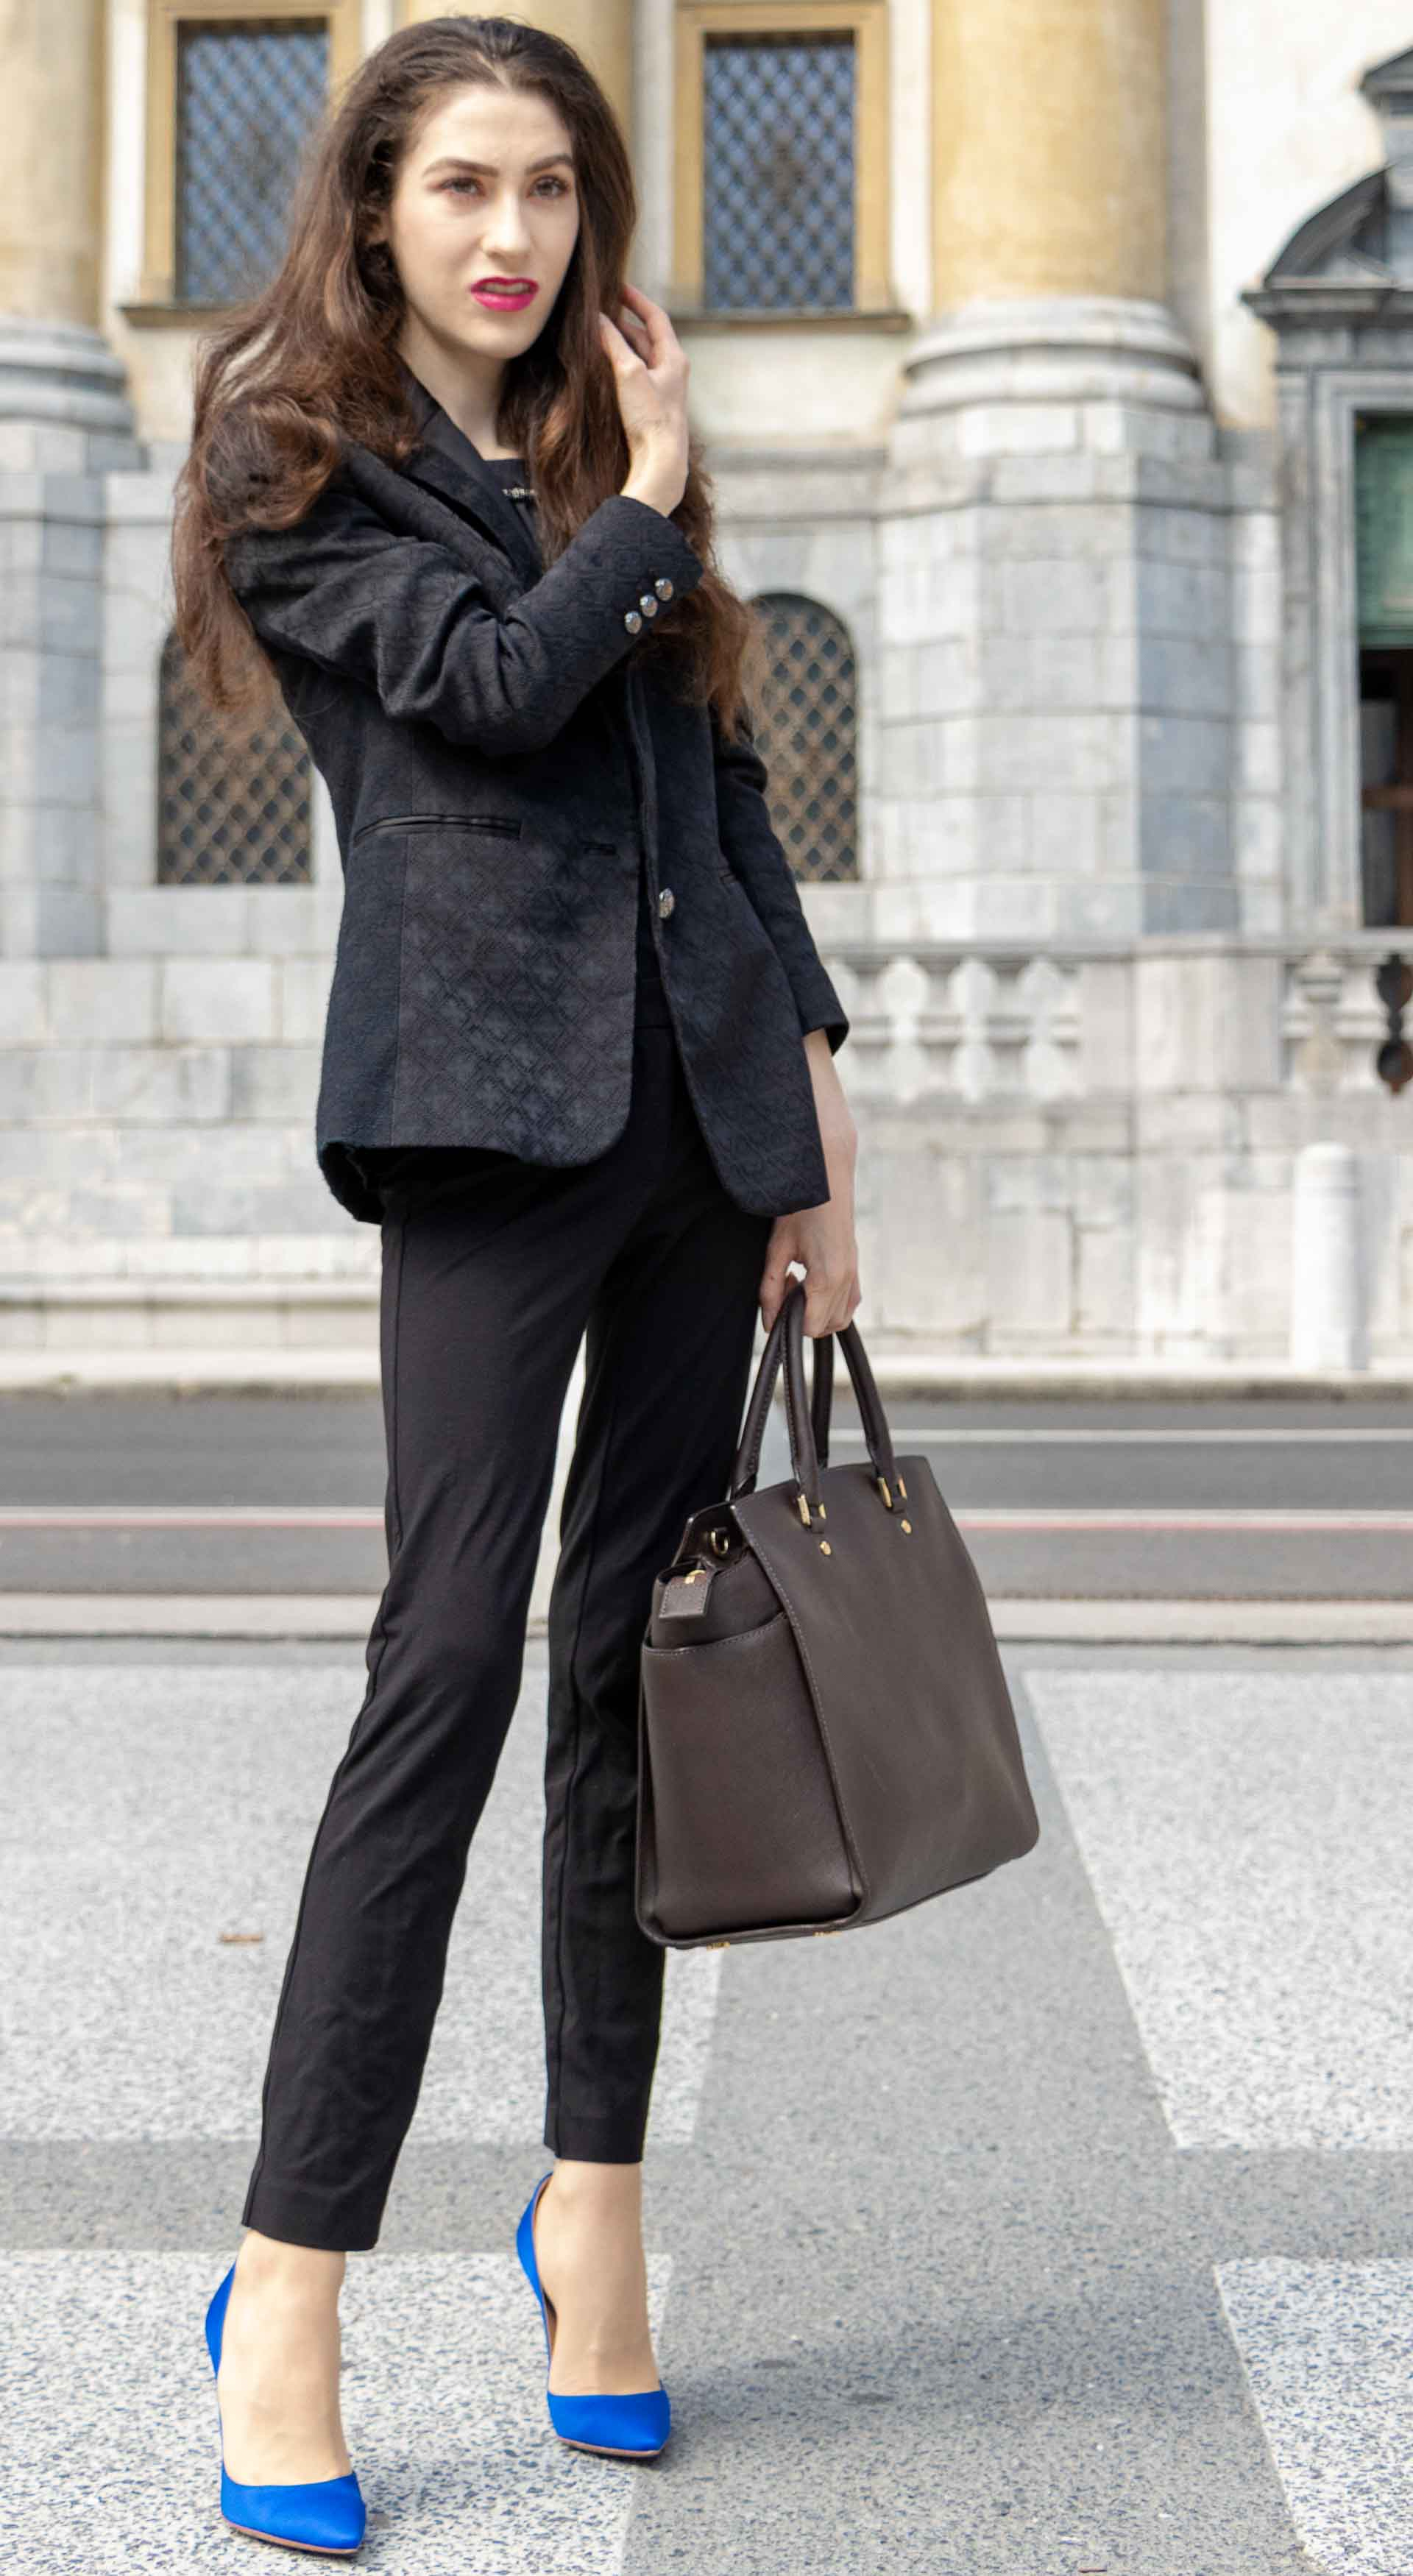 Beautiful Slovenian Fashion Blogger Veronika Lipar of Brunette from Wall wearing black pantsuit, brown Michael Kors selma top handle tote bag, Gianvito Rossi blue satin courts for work in fall